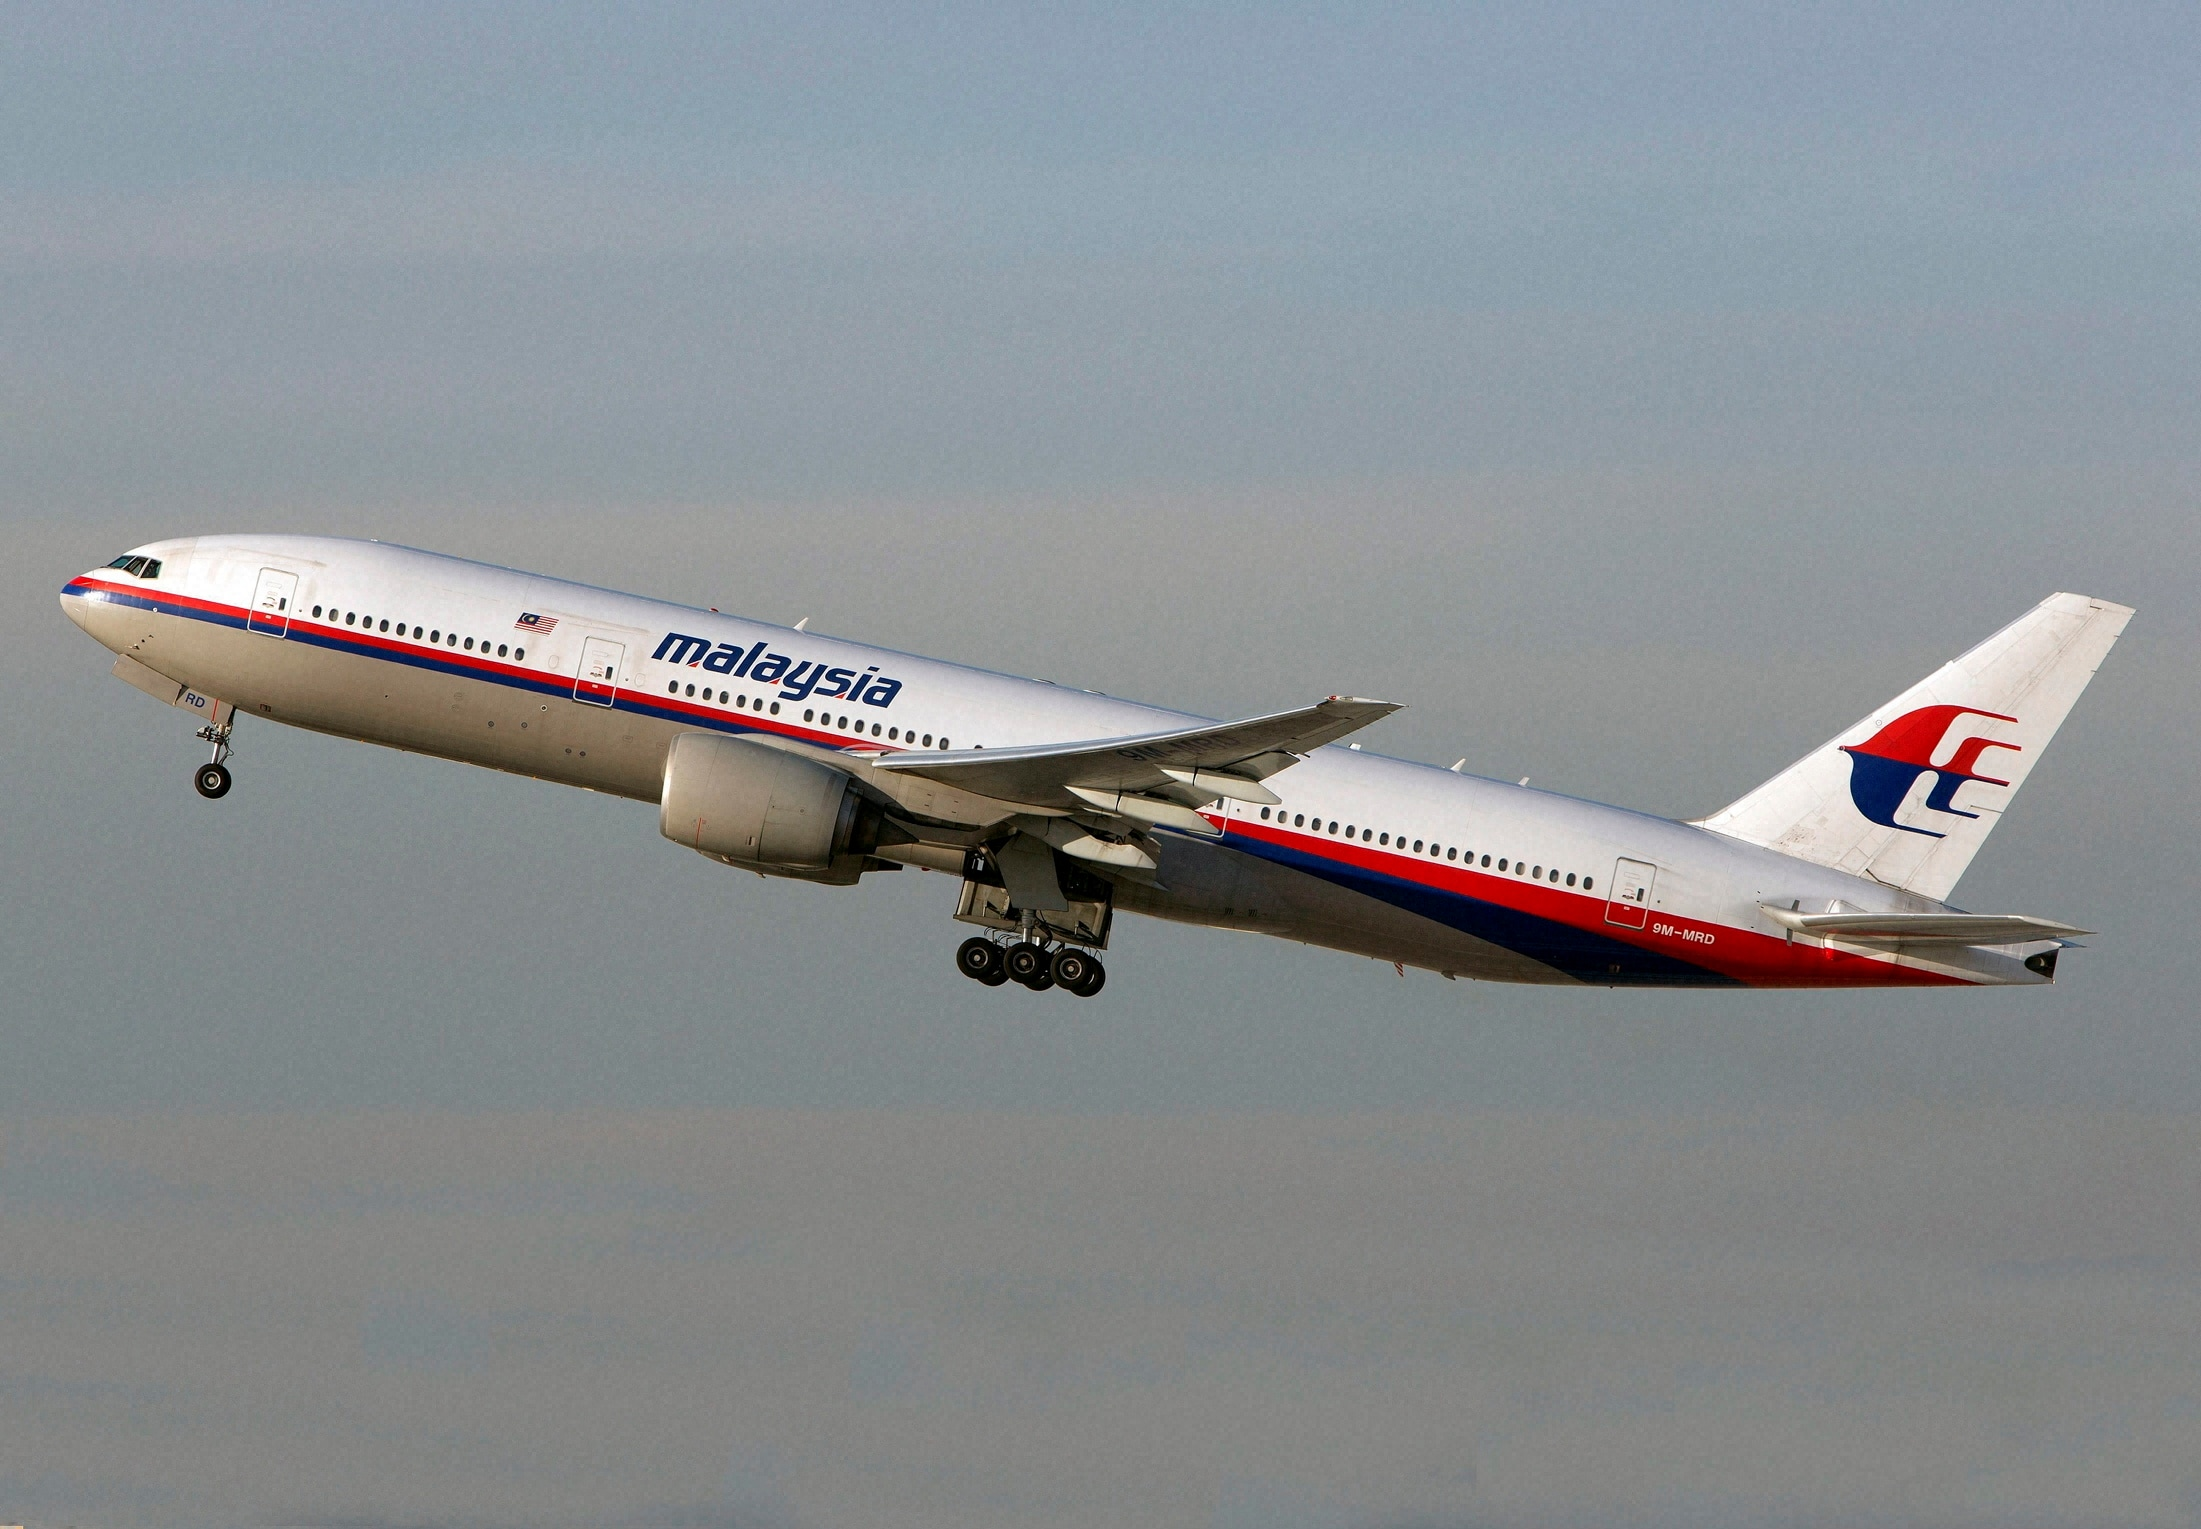 Malaysia, Airlines, Boeing, 777-200,  Los Angeles, International Airport, plane, tail number, 9M-MRD, aircraft,  heading, Amsterdam, Kuala Lumpur, shot down, Ukraine, Russia, border, Anton Gerashenko, interior minister